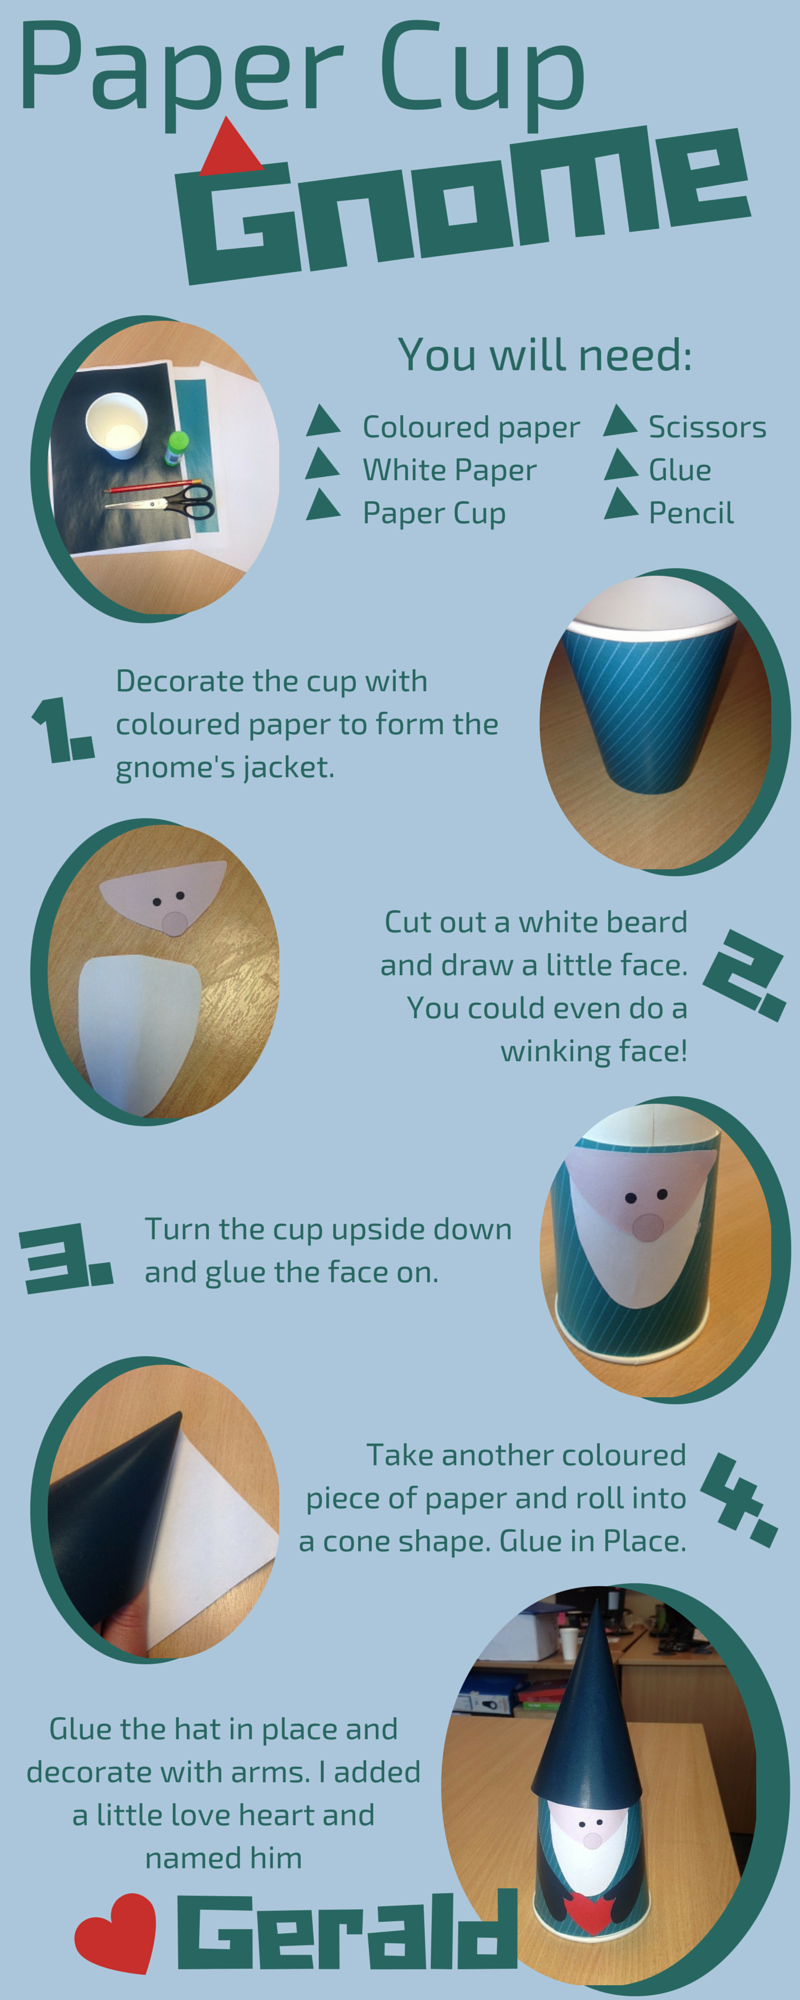 How to guide paper cup gnome papercup crafts howtoguide 1 how to guide paper cup gnome papercup crafts howtoguide jeuxipadfo Image collections